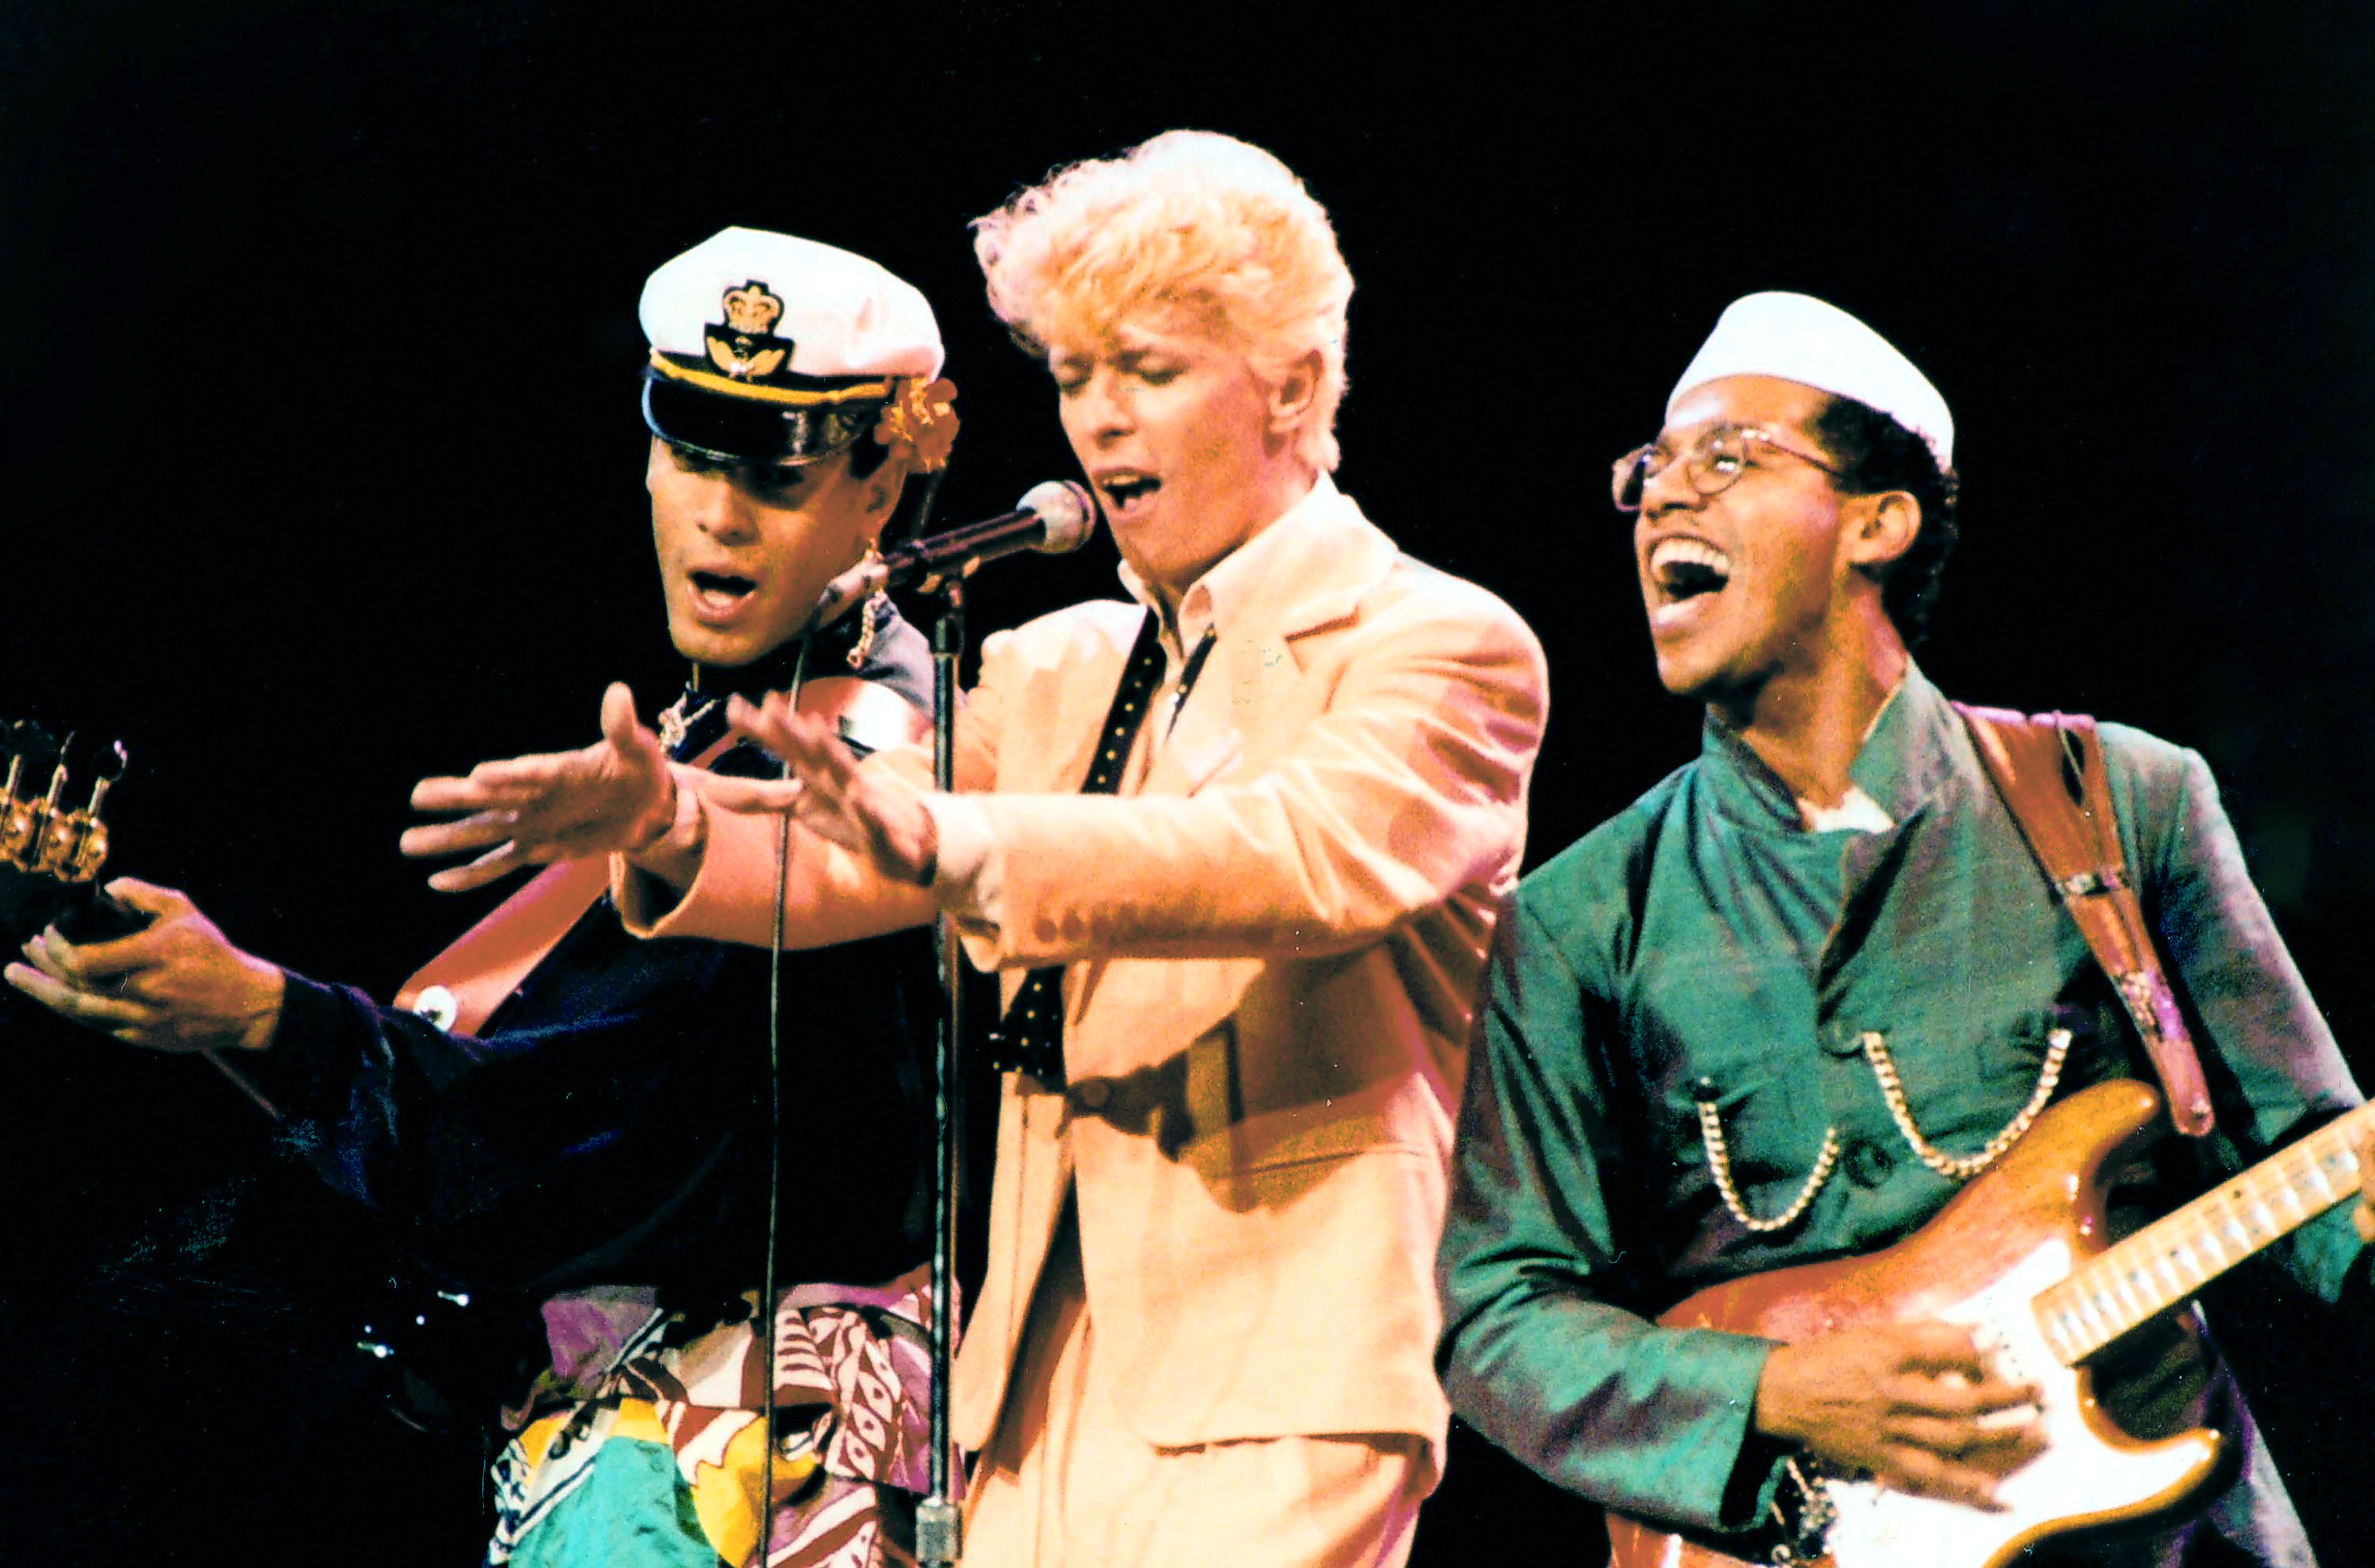 How David Bowie, Nile Rodgers Made 'Let's Dance' a Hit